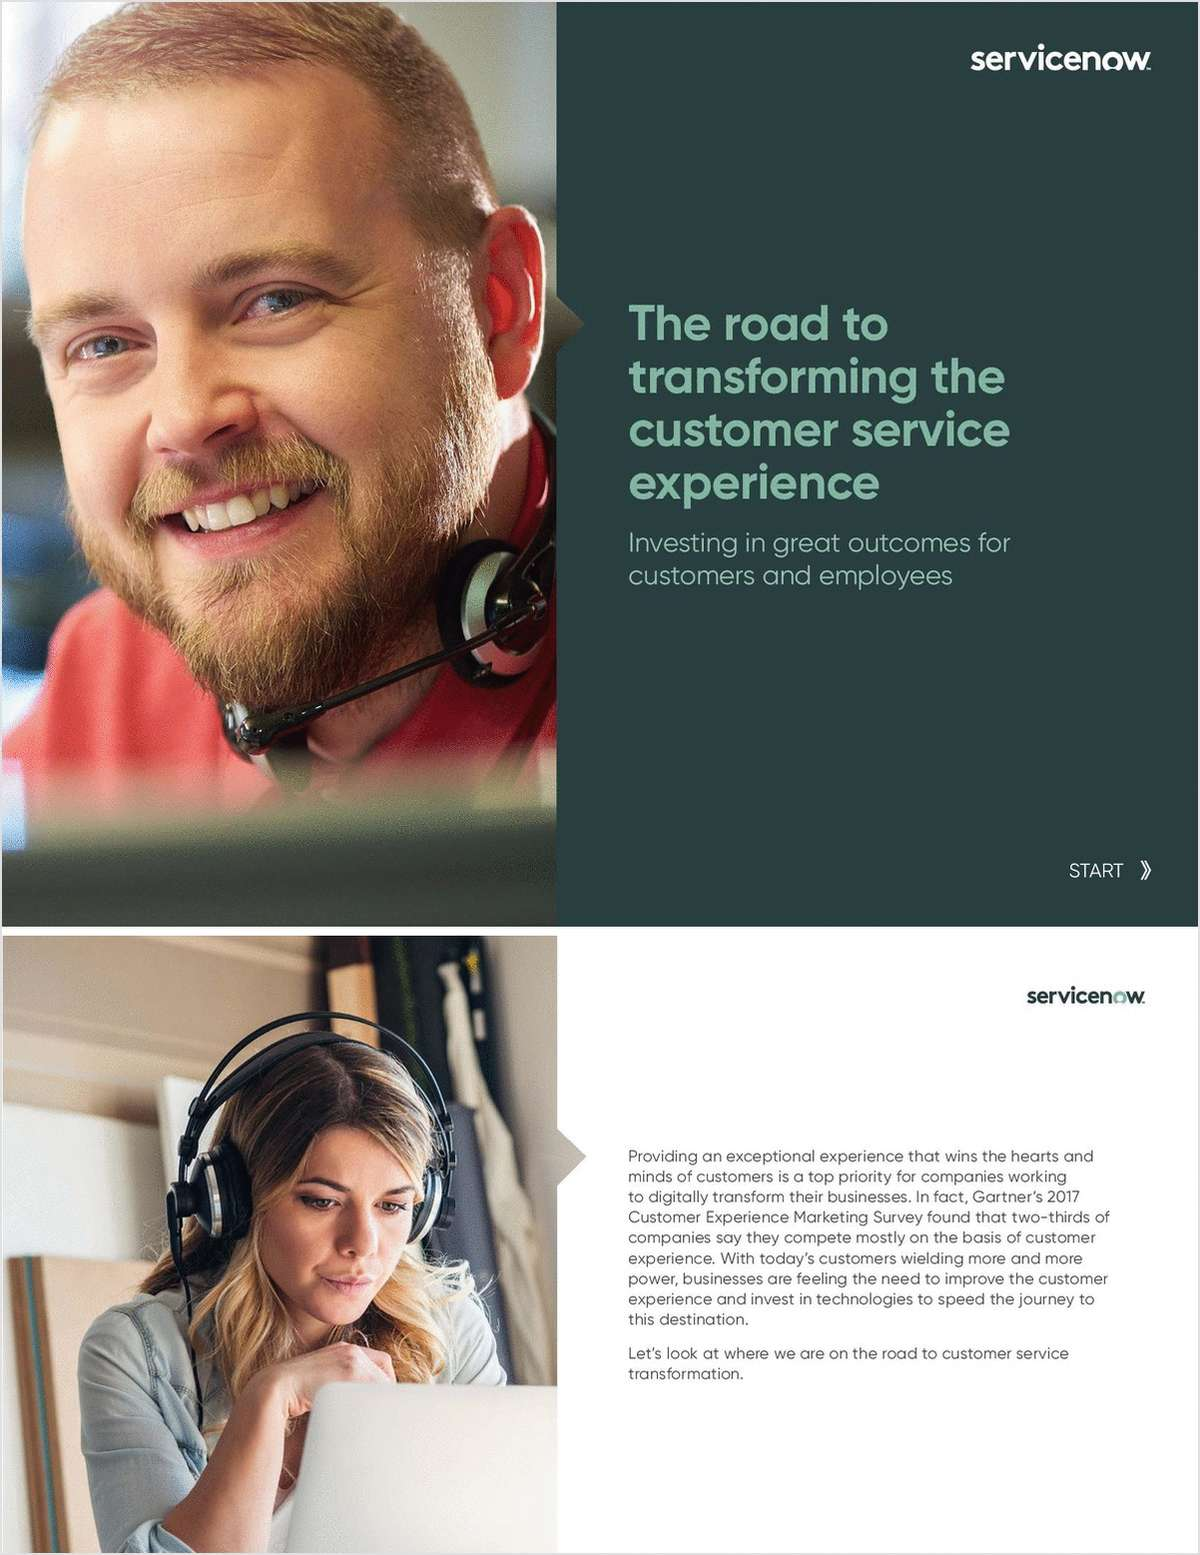 The Road to Transforming the Customer Service Experience: Investing in Great Outcomes for Customers and Employees